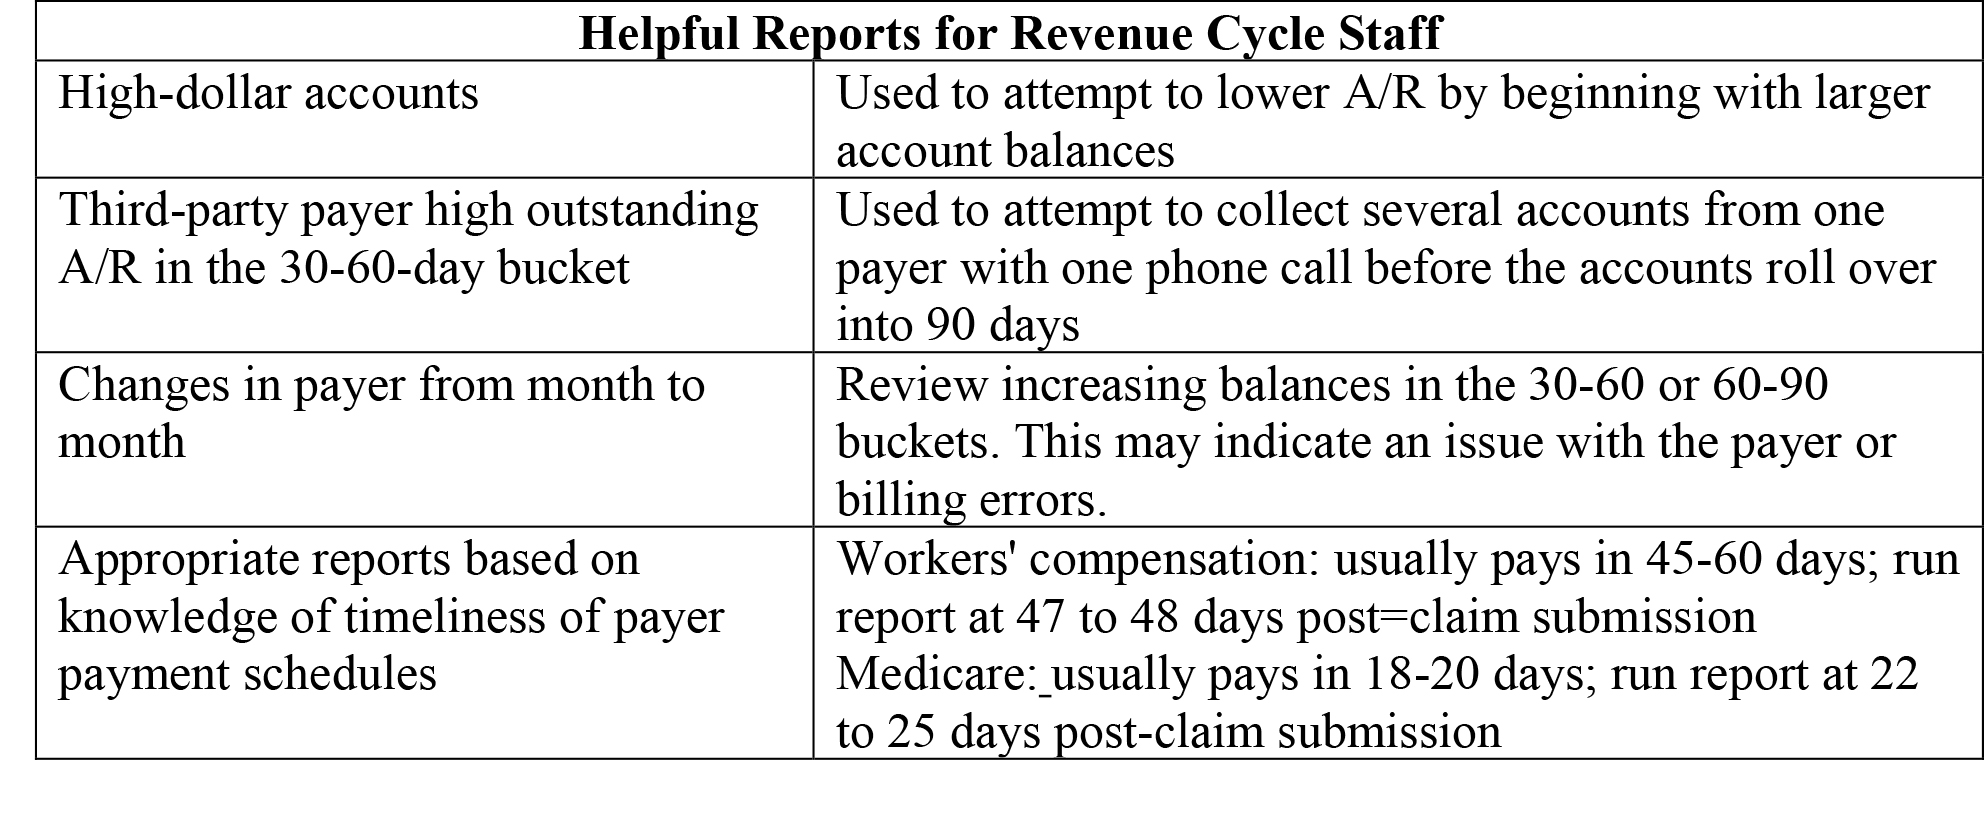 Helpful Reports for Revenue Cycle Staff